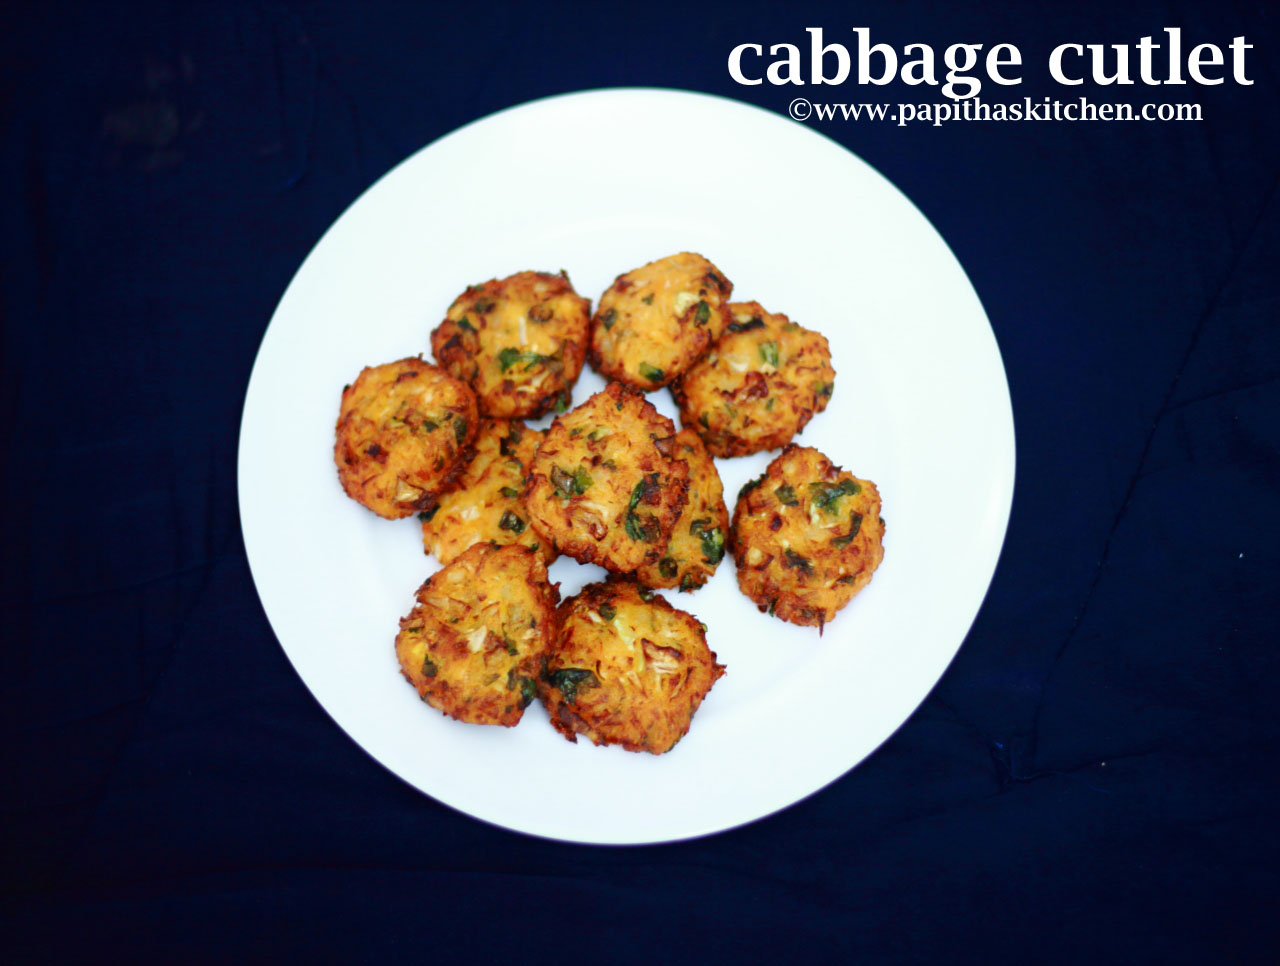 Cabbage Cutlet Recipe Snacks Recipe Papitha S Kitchen